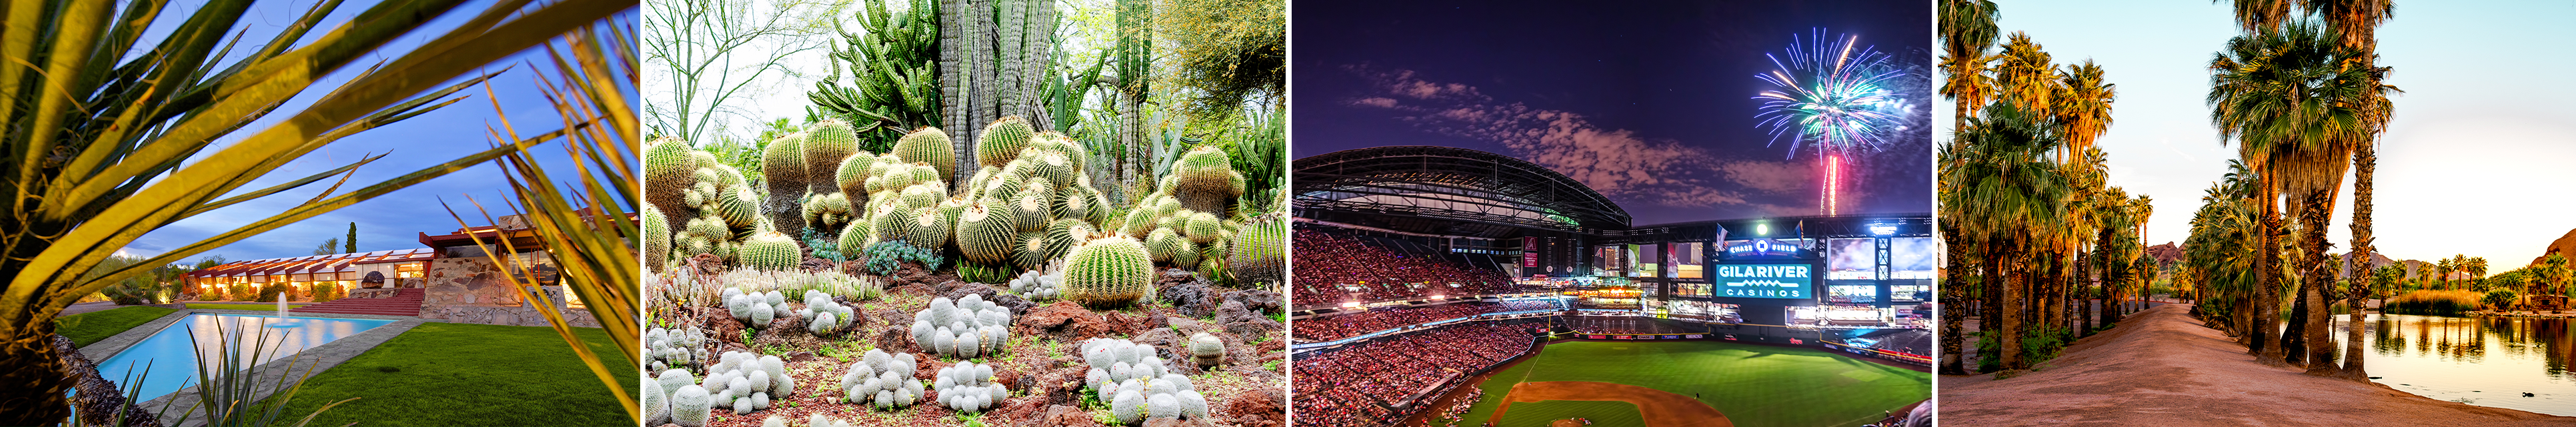 A collage of pictures including wild cactus plants, some local parks, and fireworks over the Chase Baseball Stadium which is home to the Arizona Diamondbacks